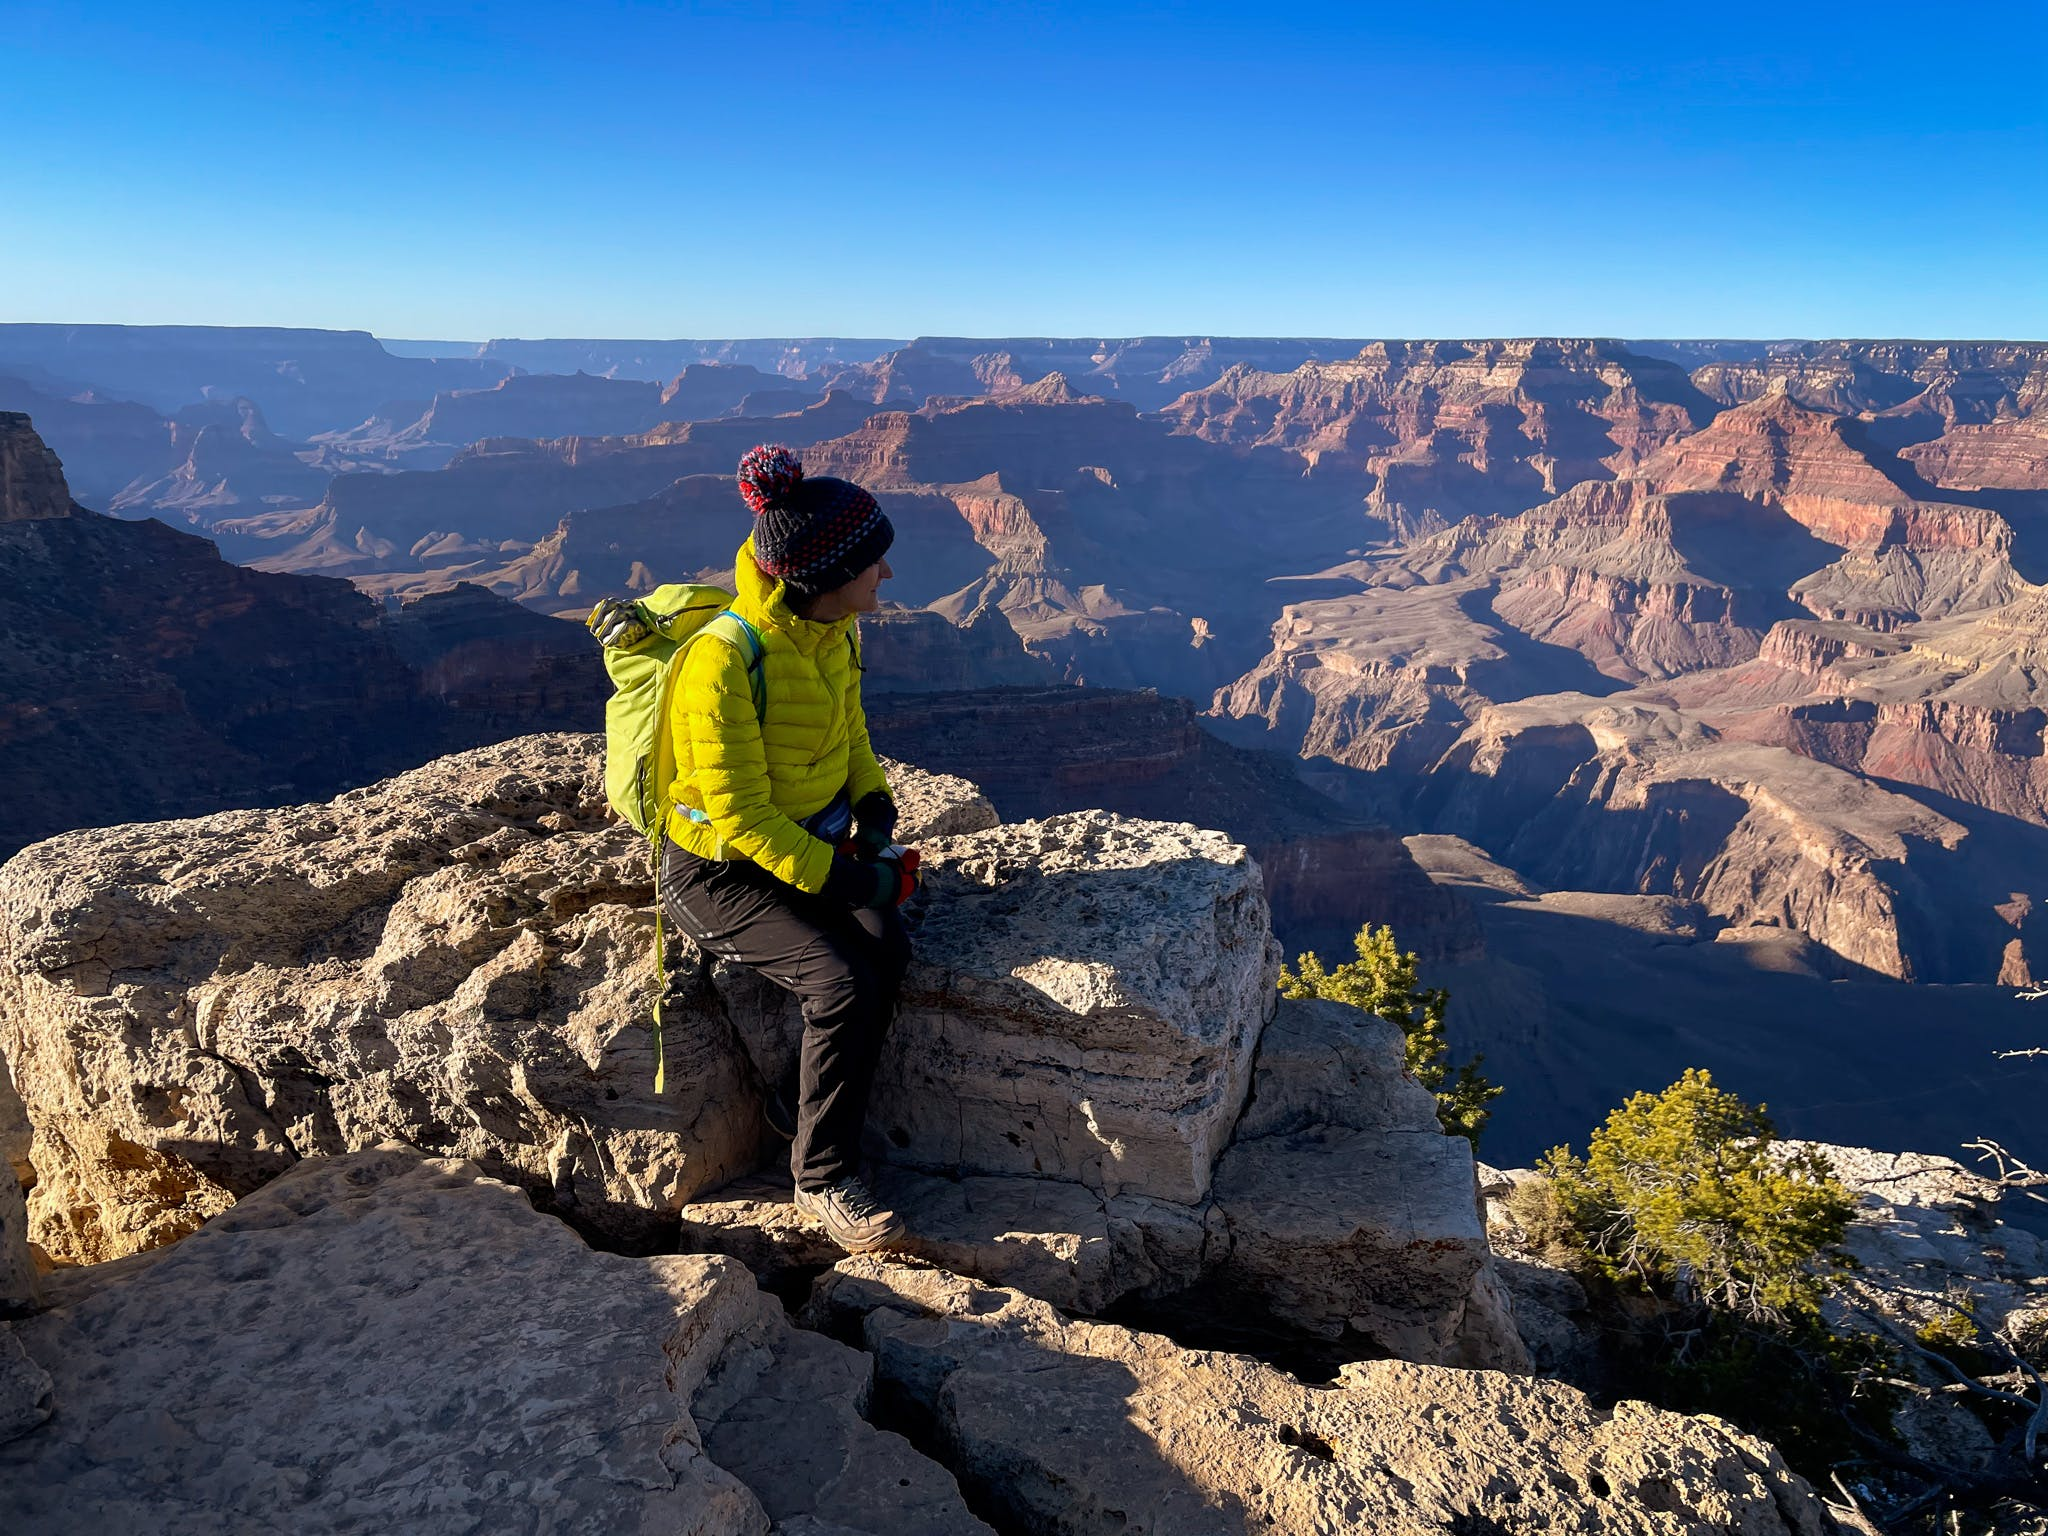 woman at sunset on rim of Grand Canyon